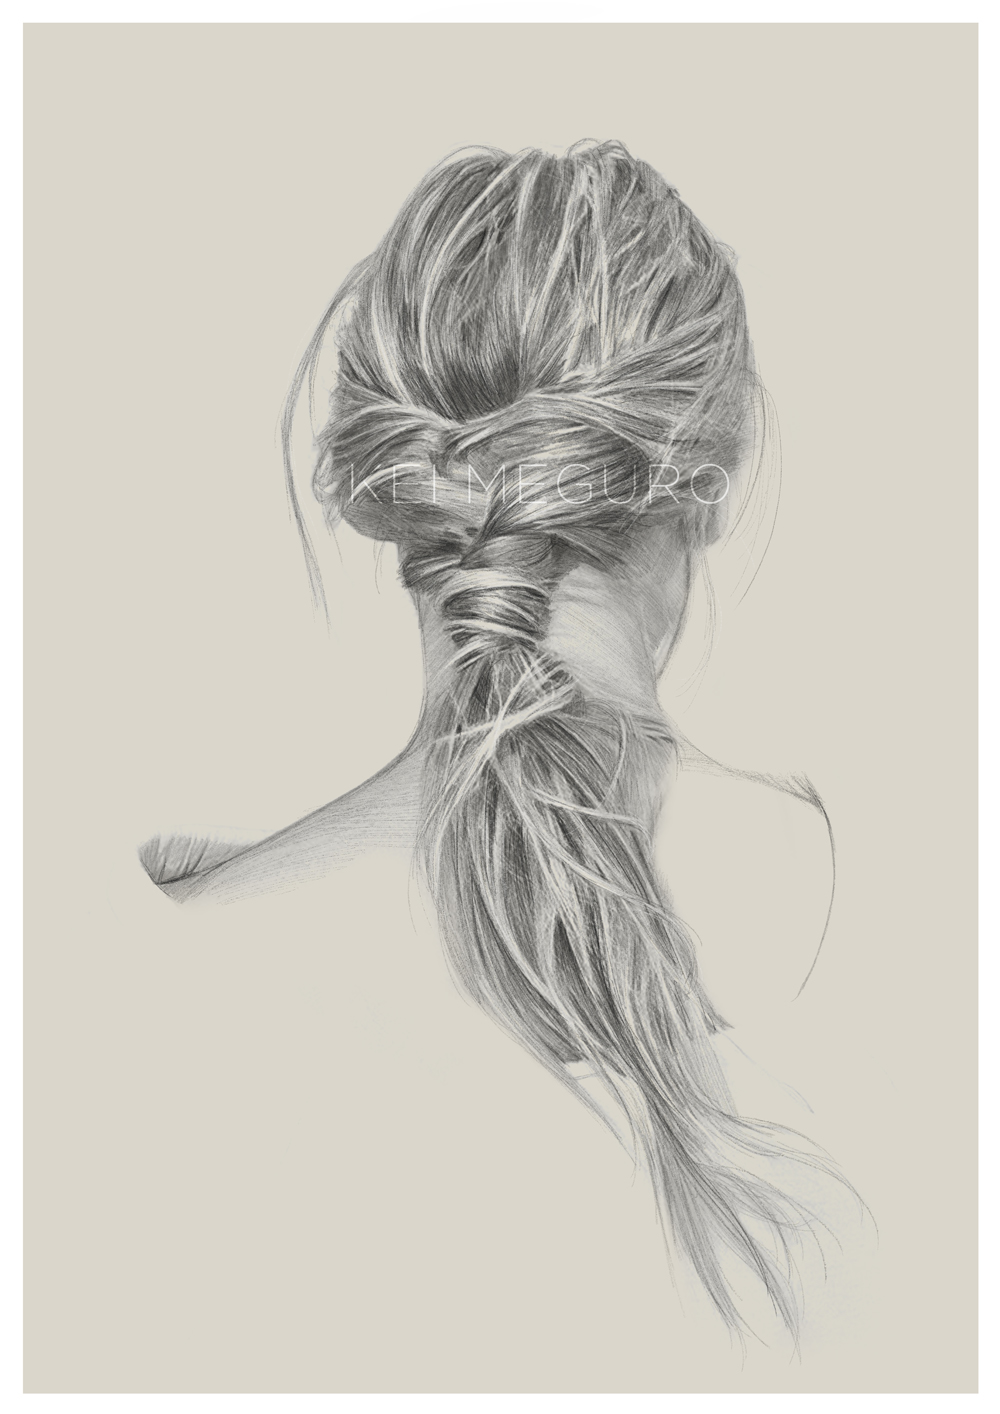 03-Hair-Brading-Kei-Meguro-Traditional-and-Digital-Art-Portraits-in-New-York-www-designstack-co